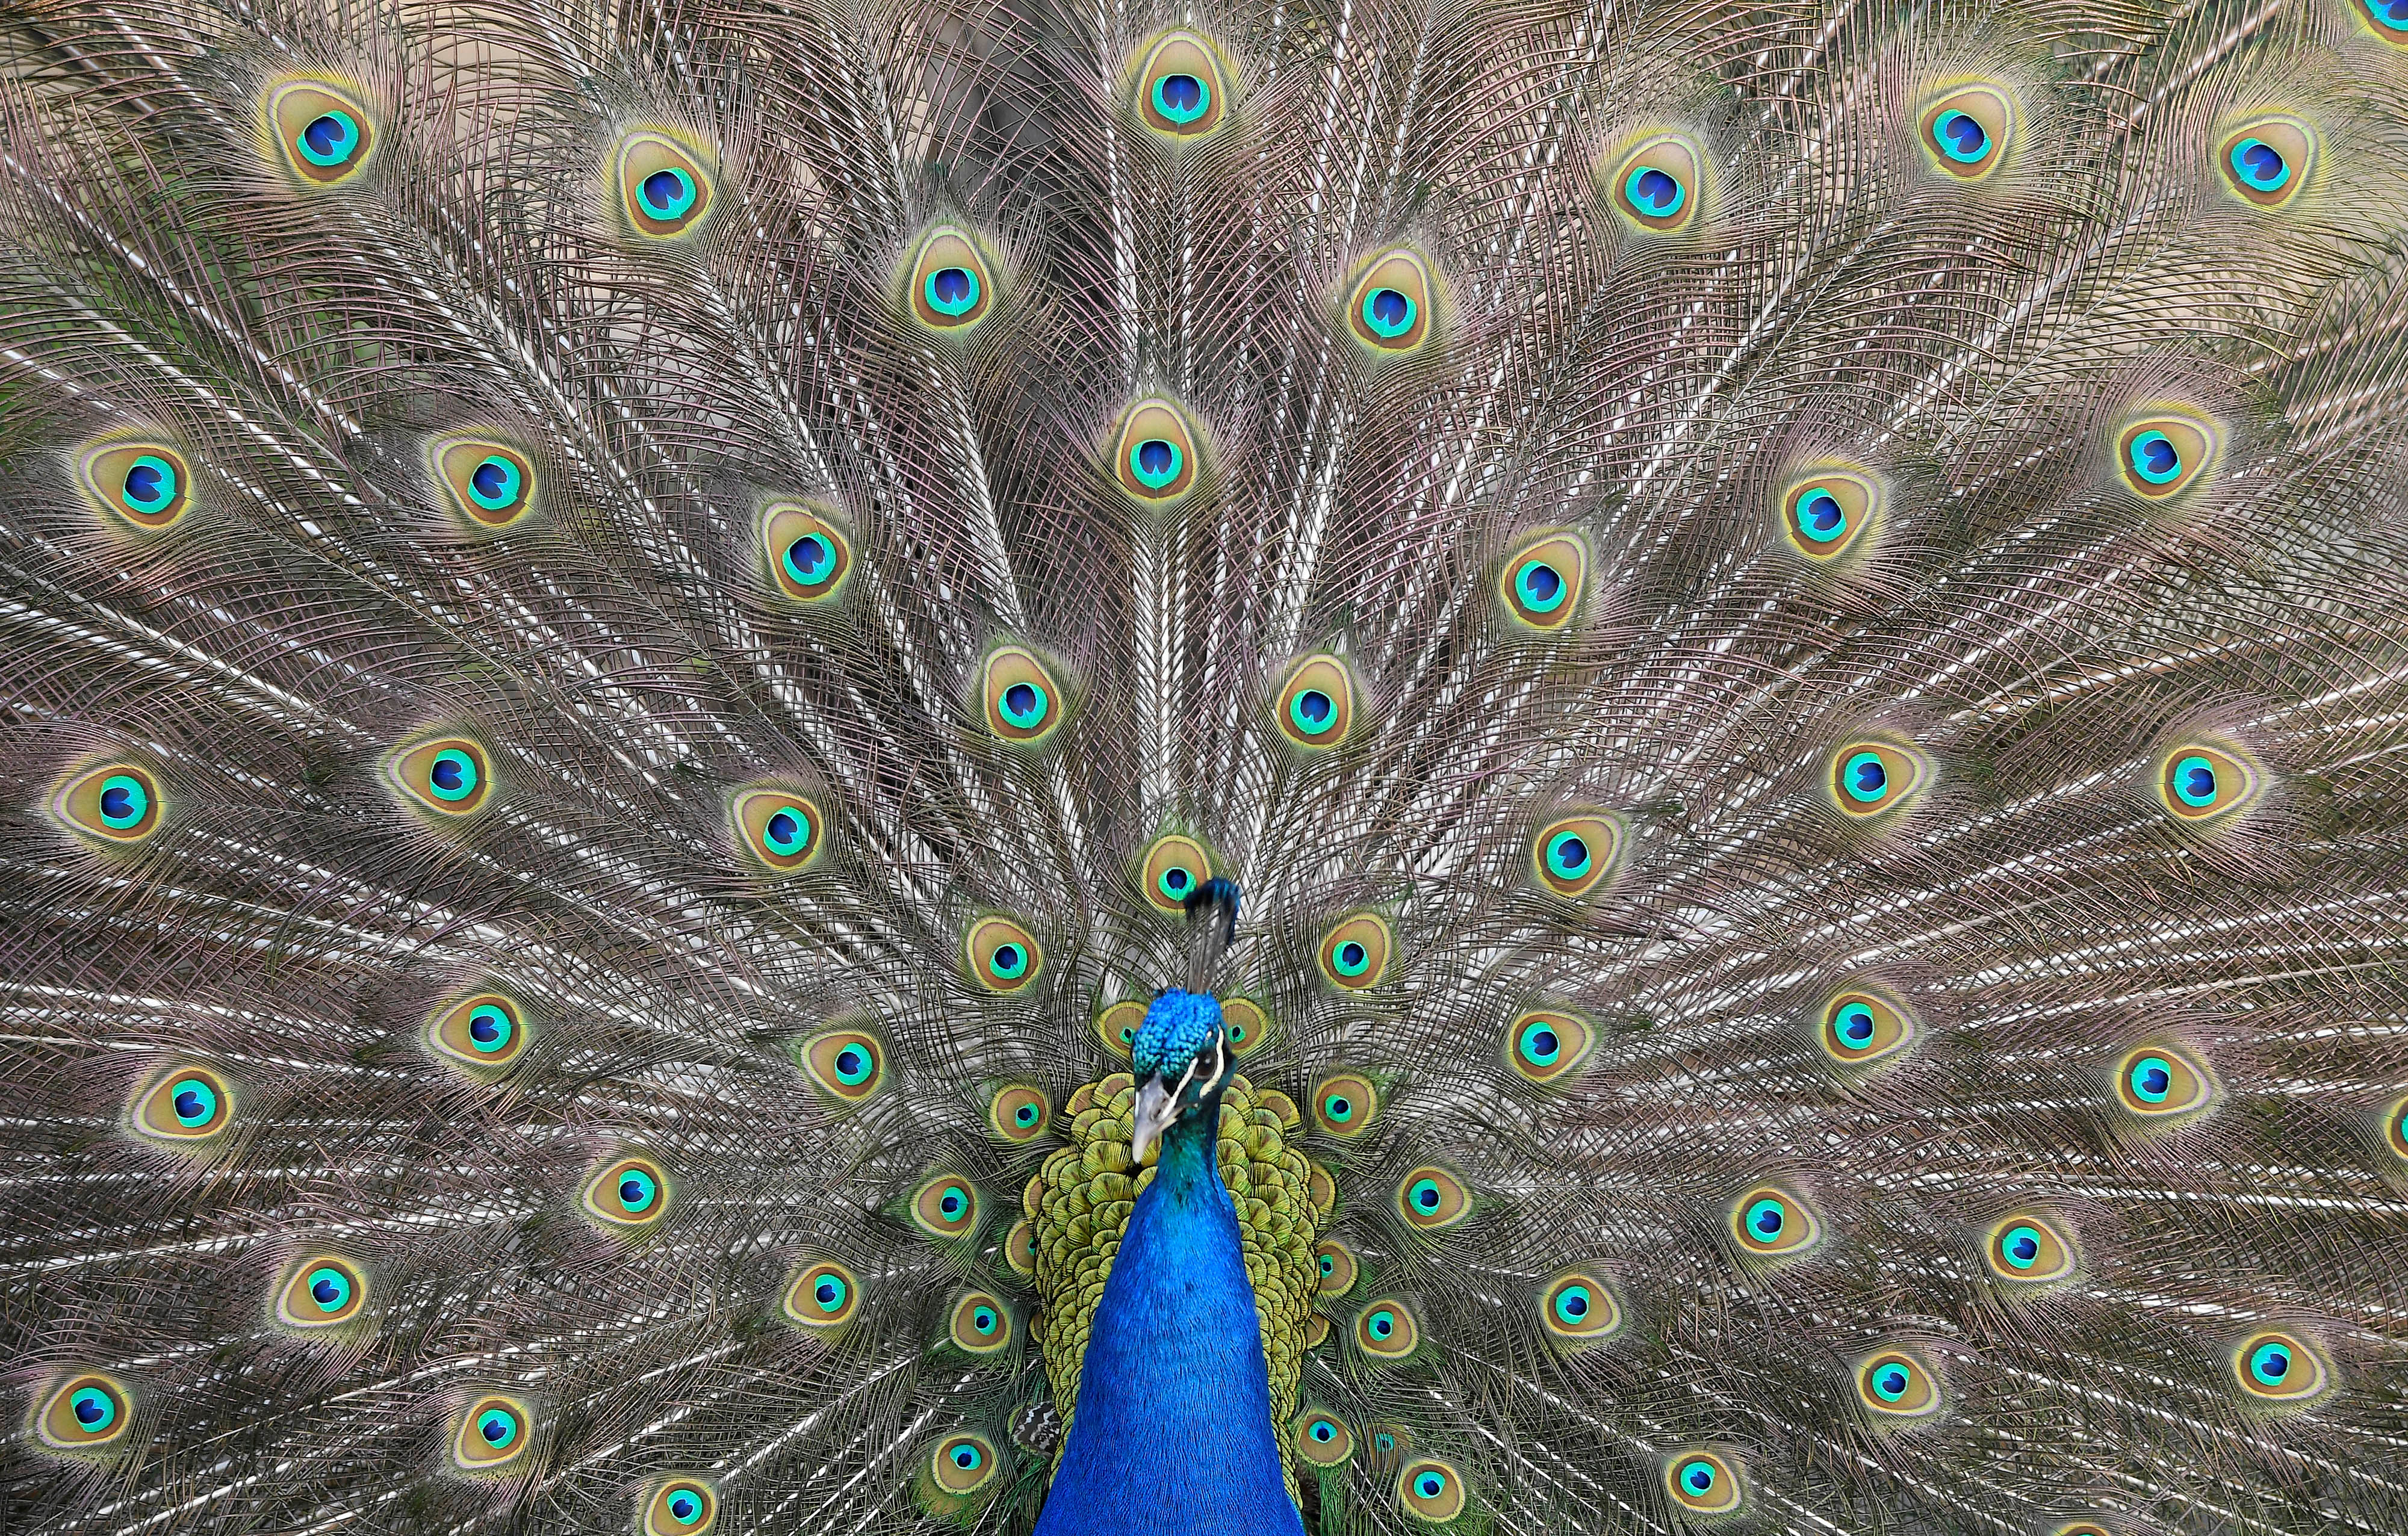 A peacock displays his plumage as part of a courtship ritual to attract a mate, at a park in London, Britain, May 4, 2018. REUTERS/Toby Melville - RC14F4F1FE00